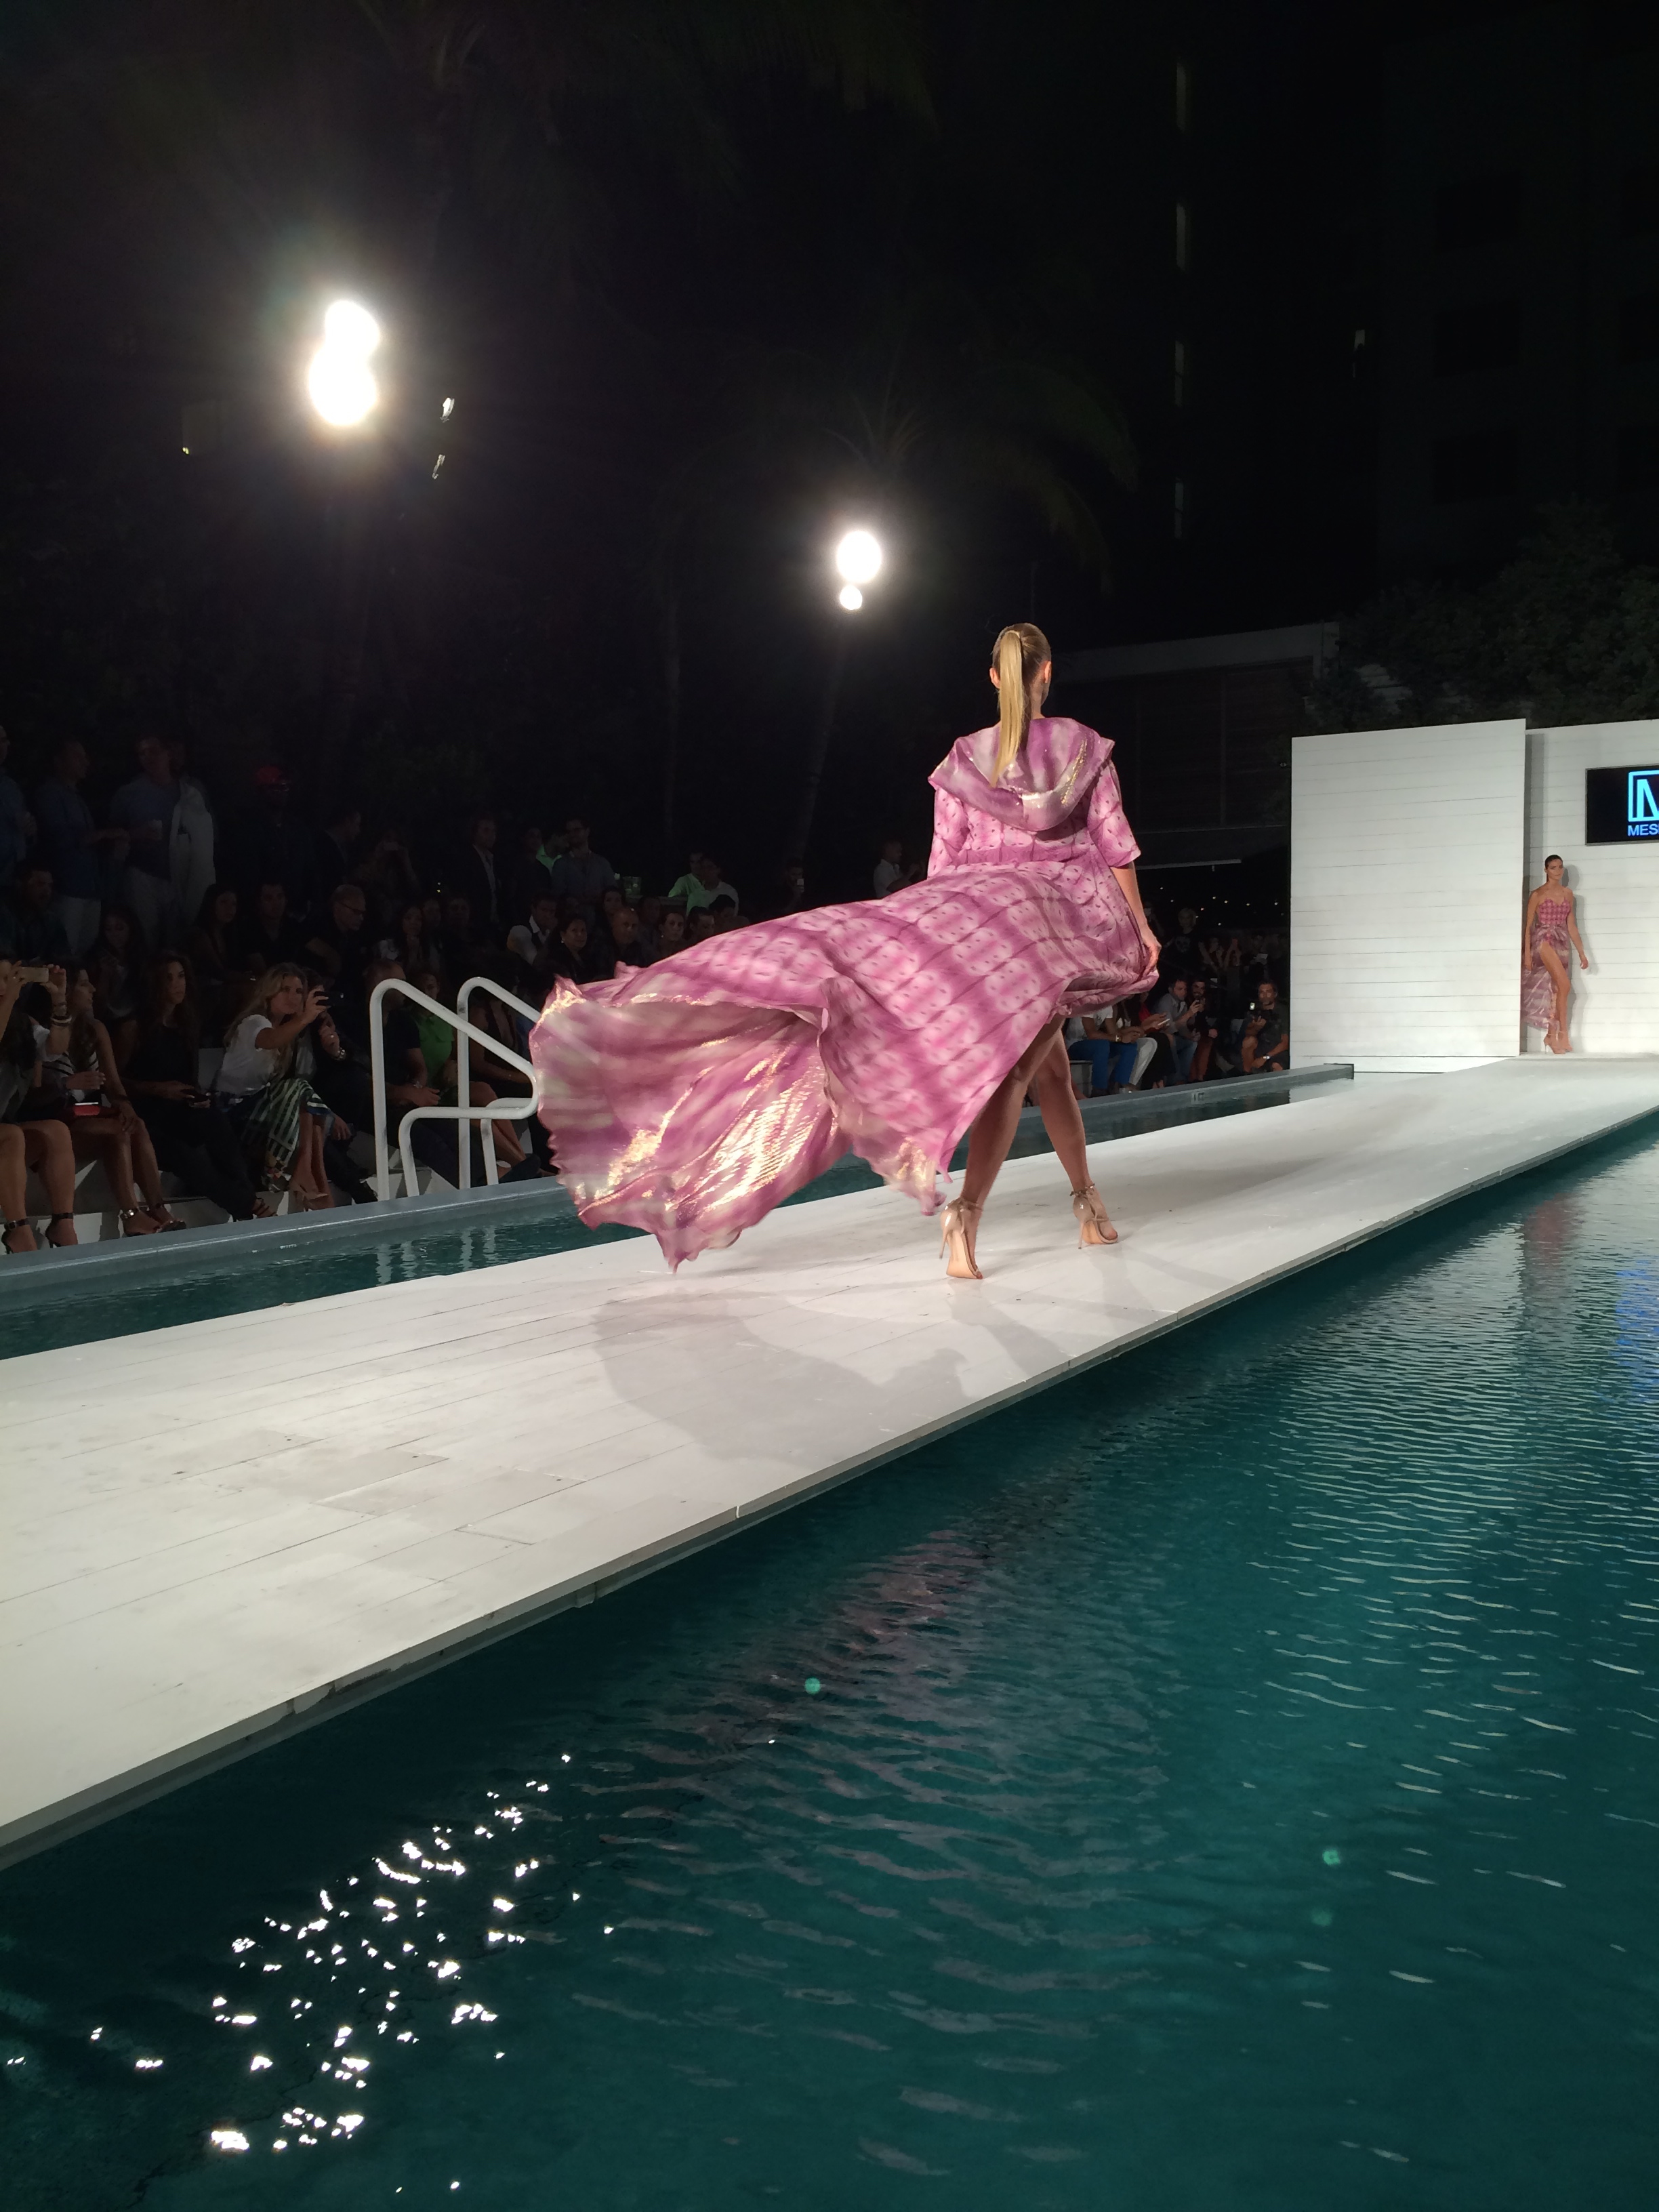 Alessandra Meskita's Fashion Designs using my artwork for MBFW 2014 in Miami.